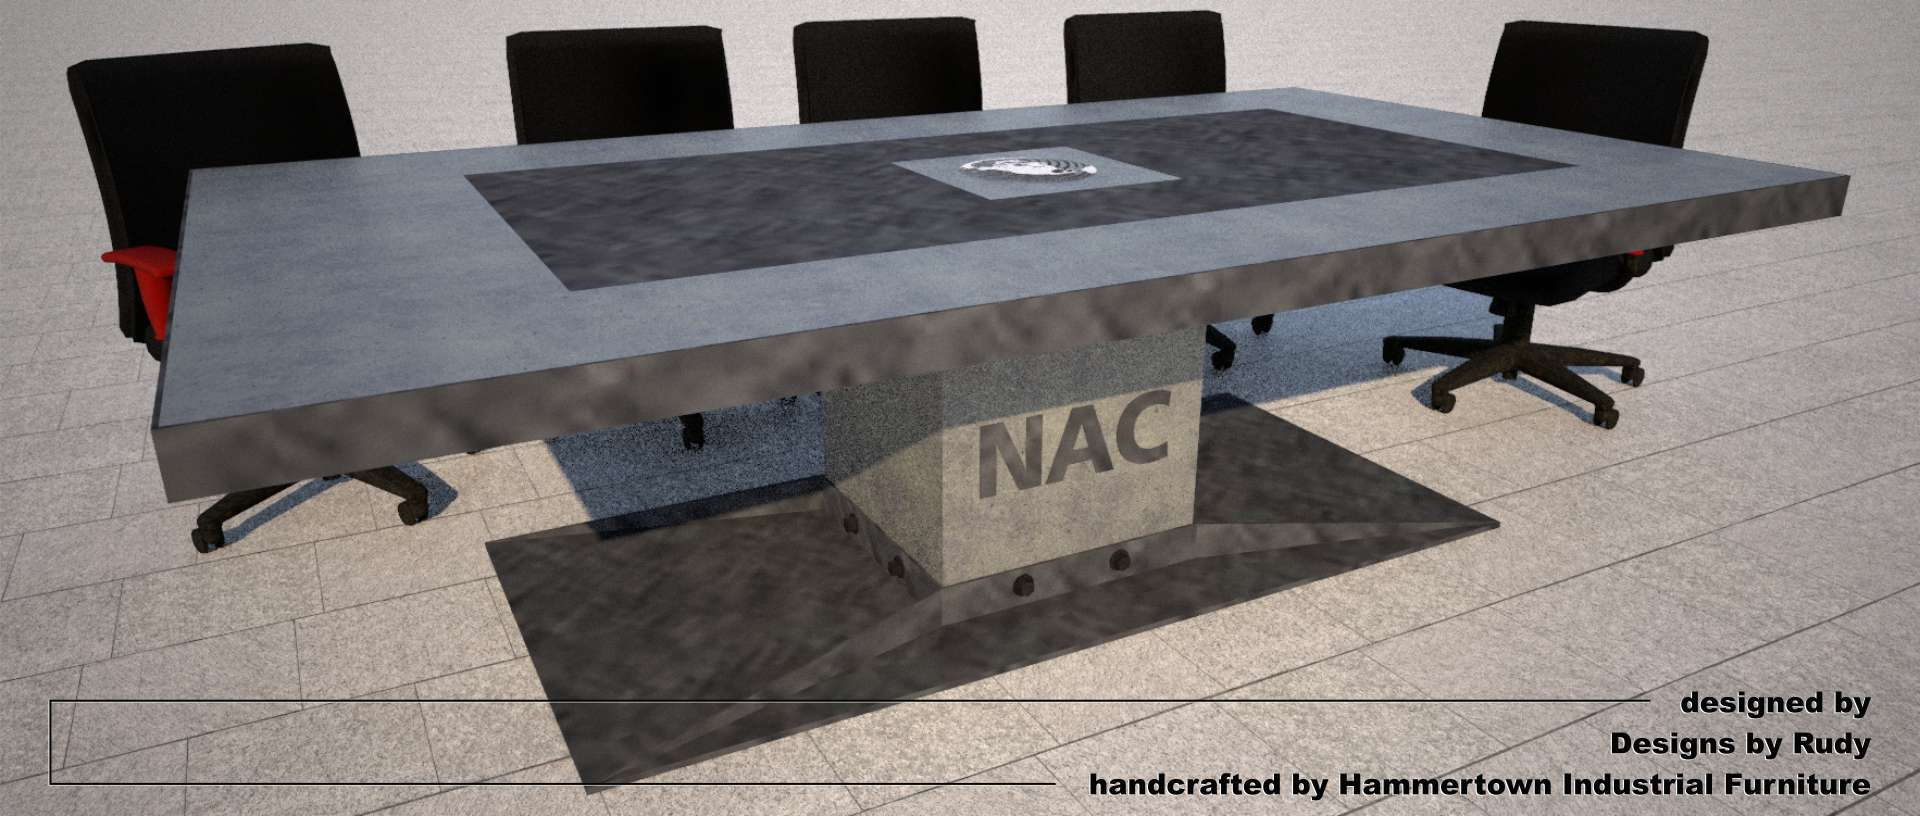 Concrete boardroom table for NAC with steel frame and base designed by Designs by Rudy, front angle view